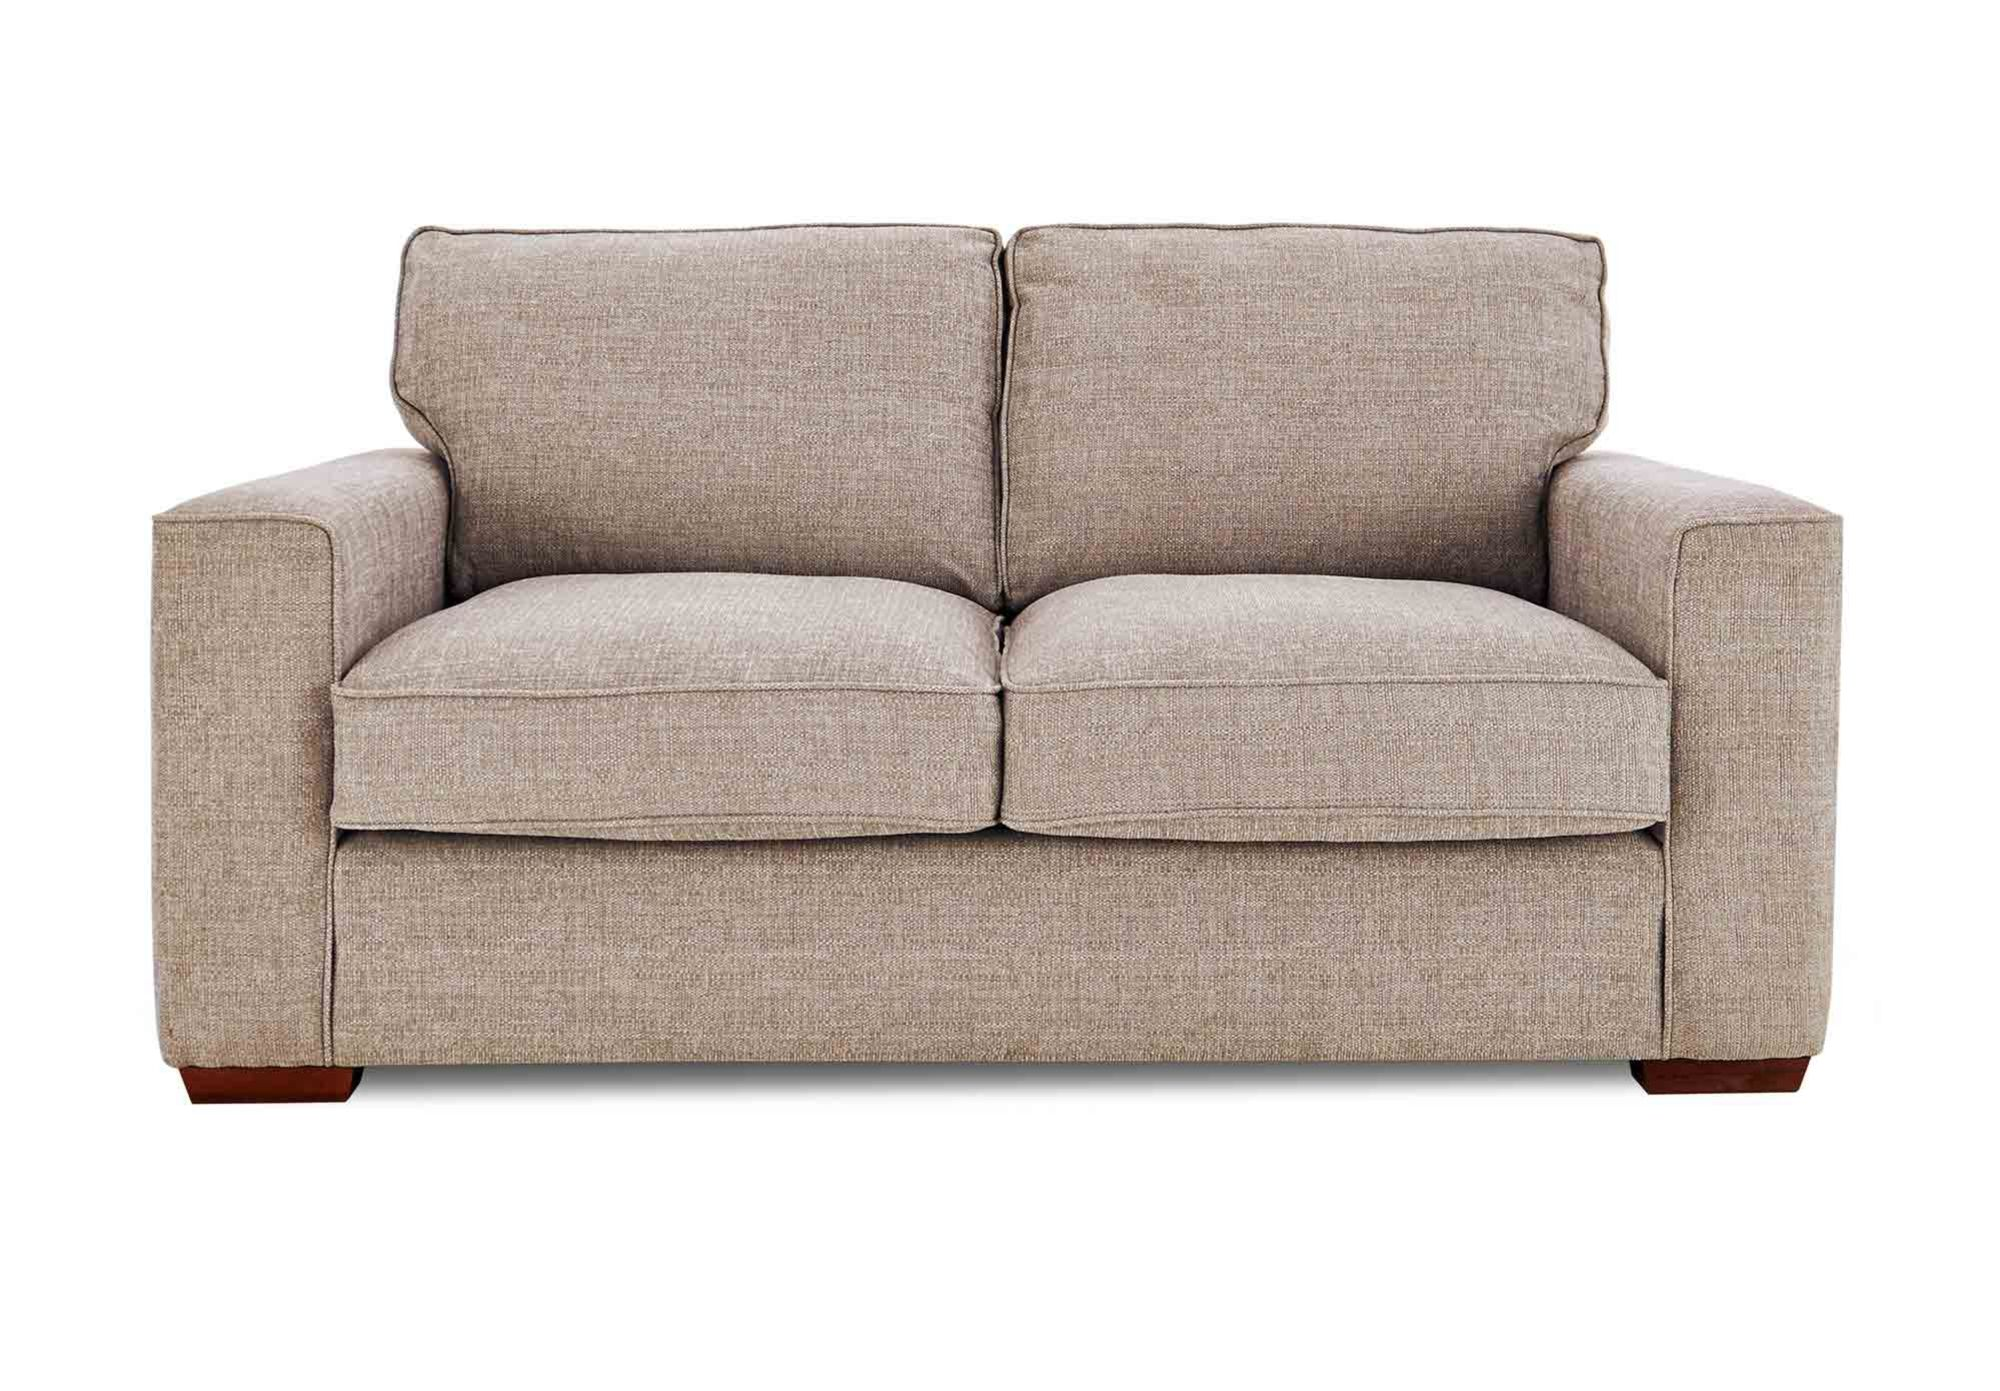 Furniture Village Aylesbury 3 seater classic back sofa - dune - gorgeous living room furniture